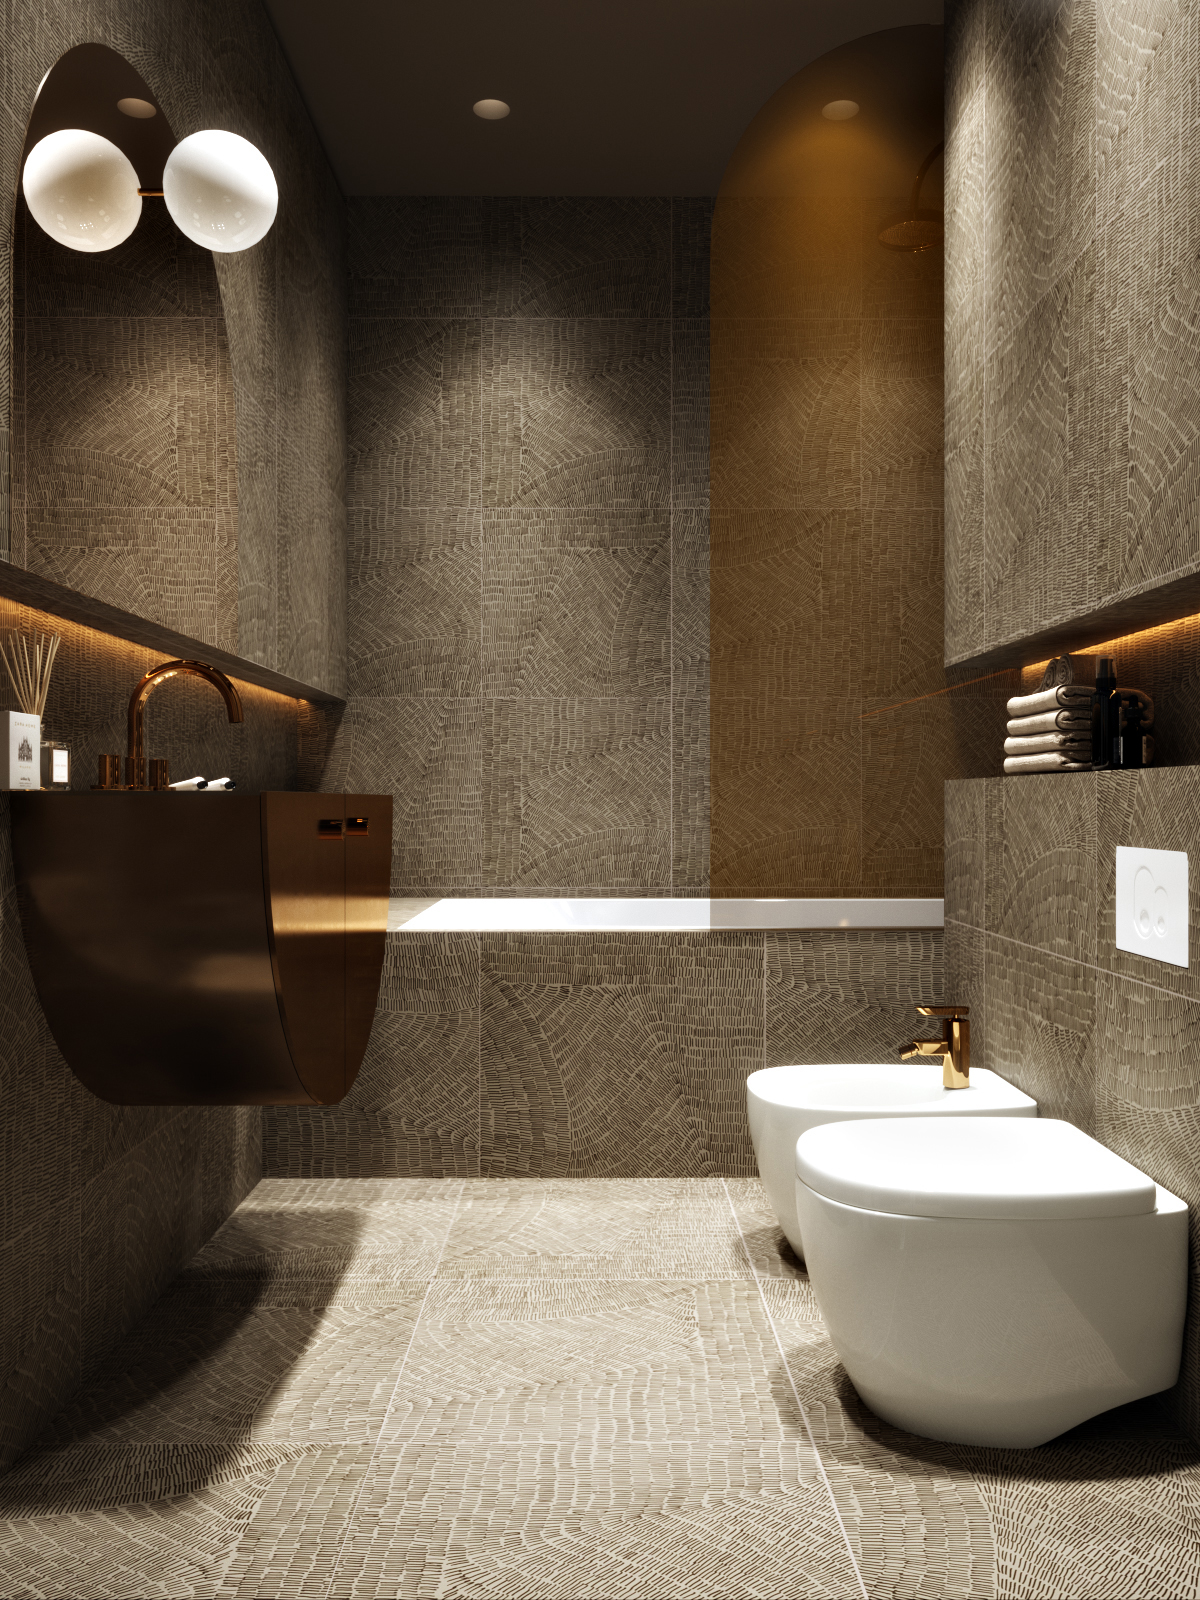 Using Gold Accents In Interior Design images 17